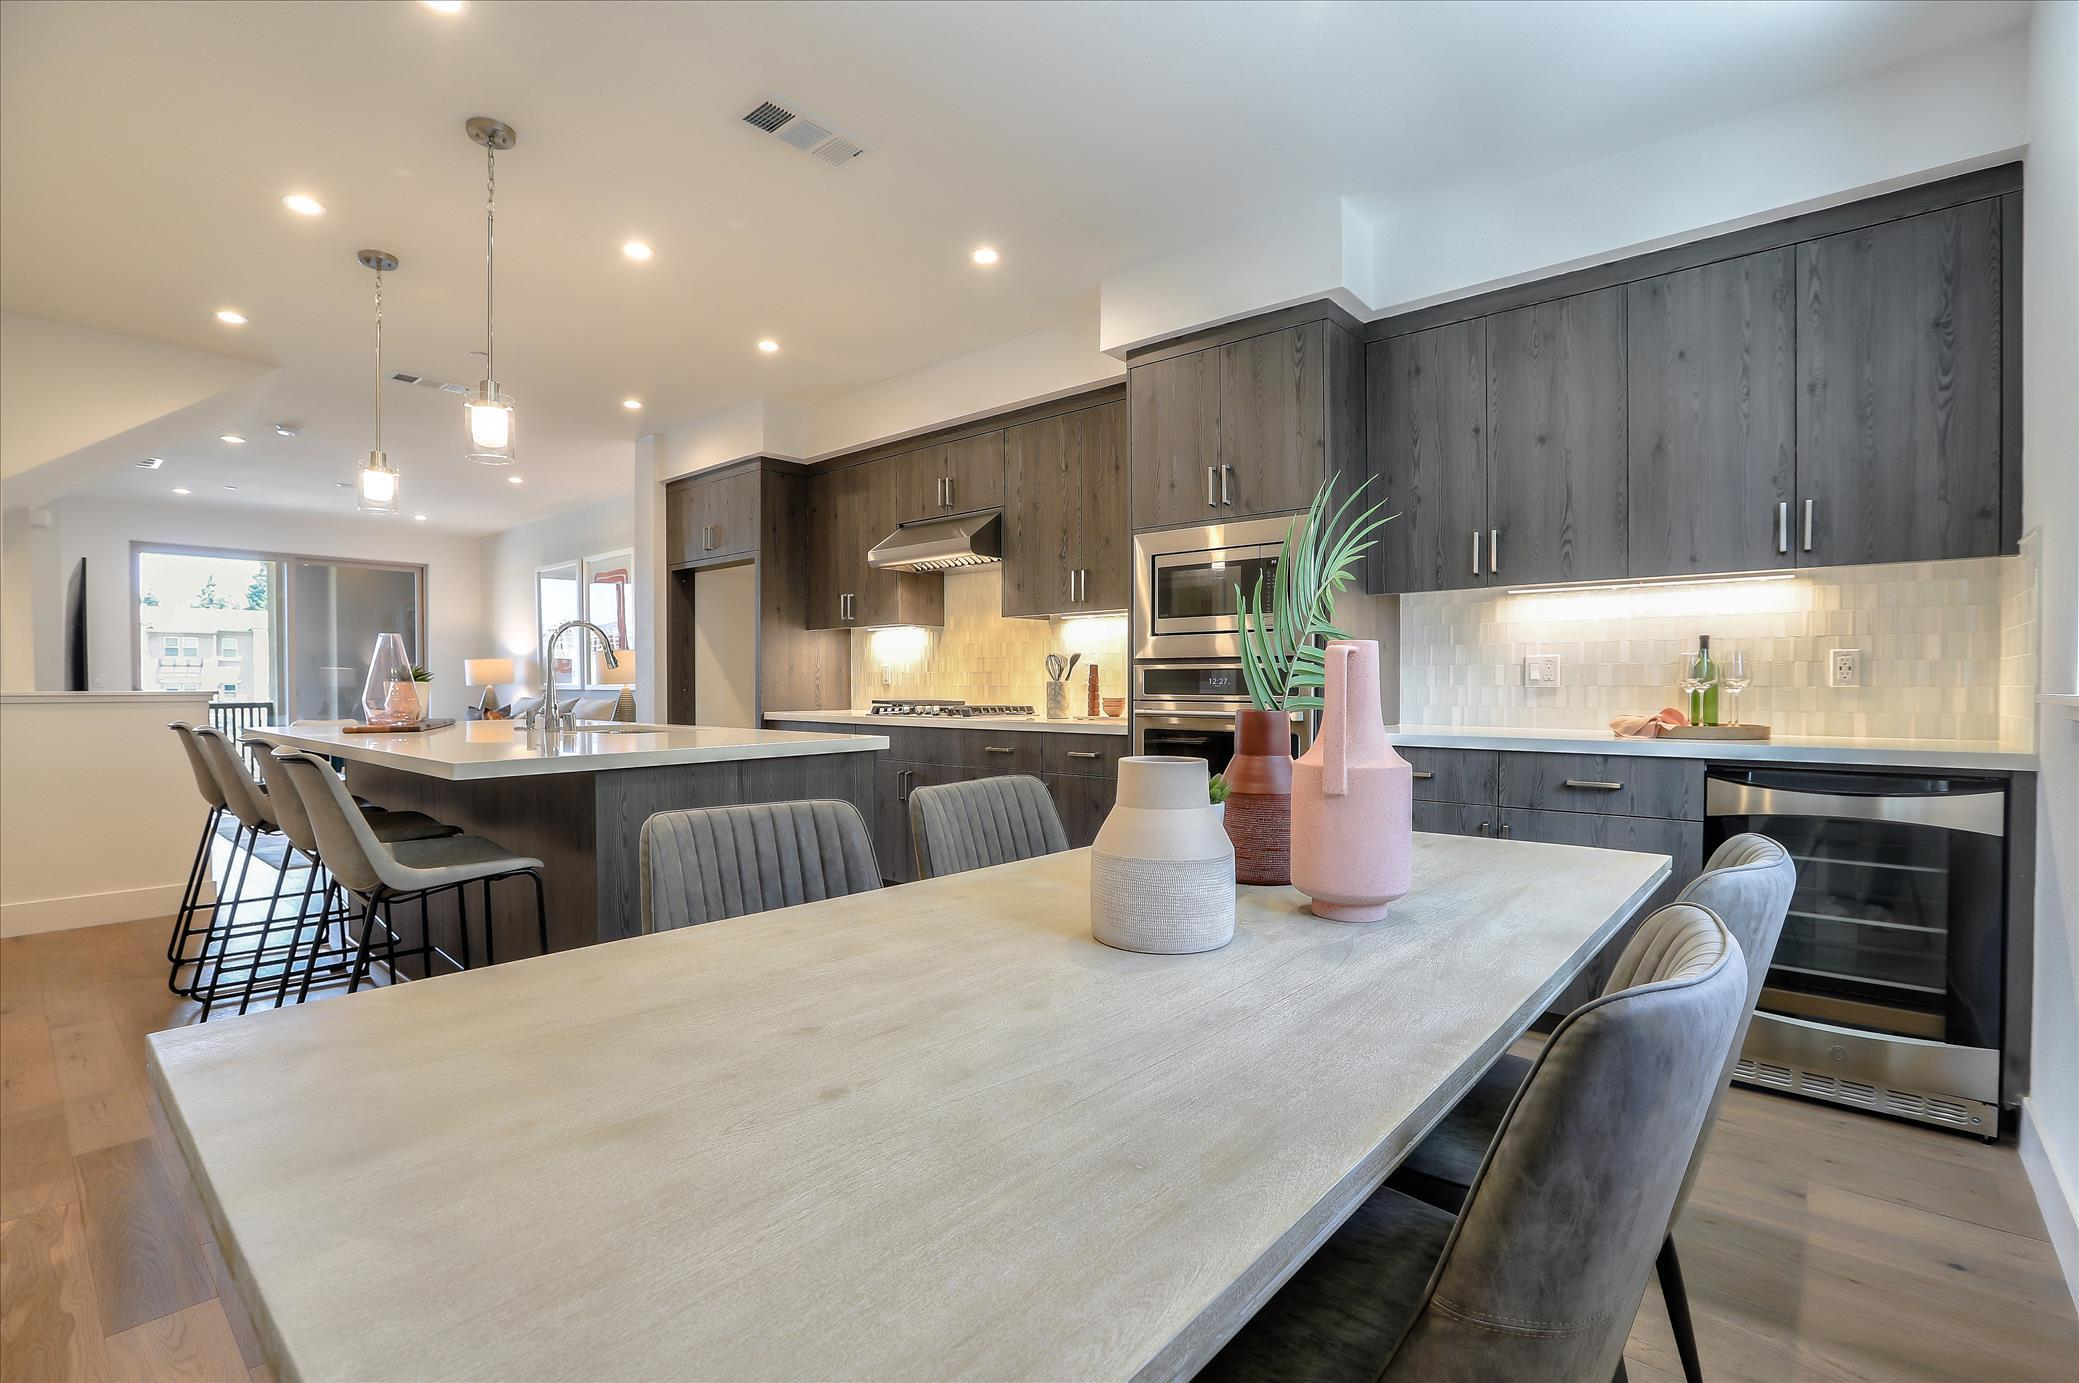 Kitchen featured in the Marquetta Residence 1 By SummerHill Homes in San Jose, CA